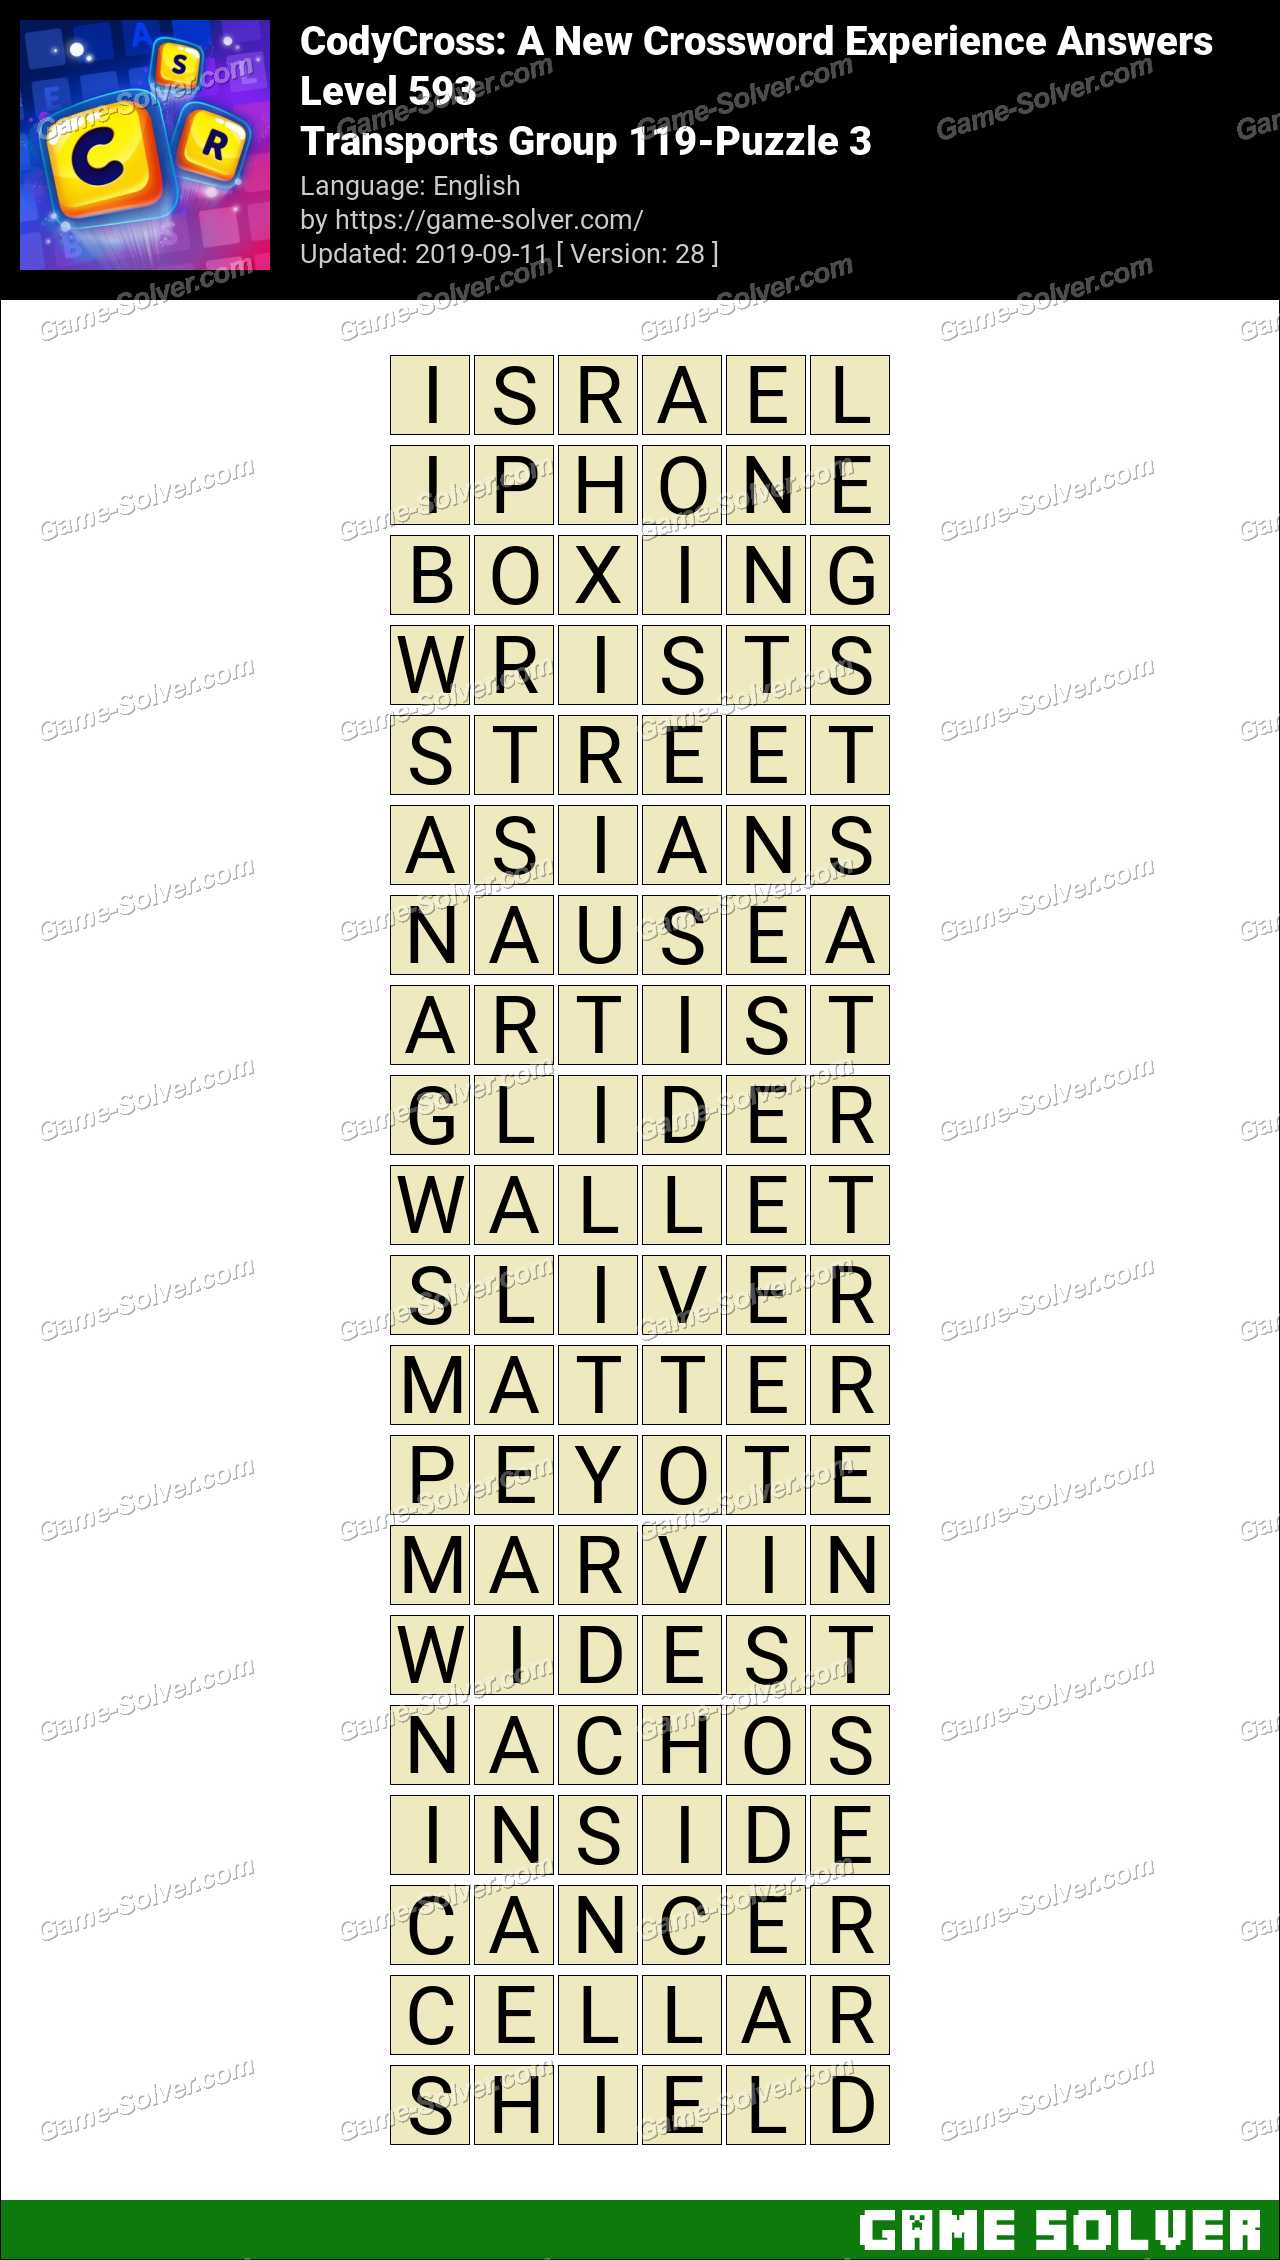 CodyCross Transports Group 119-Puzzle 3 Answers